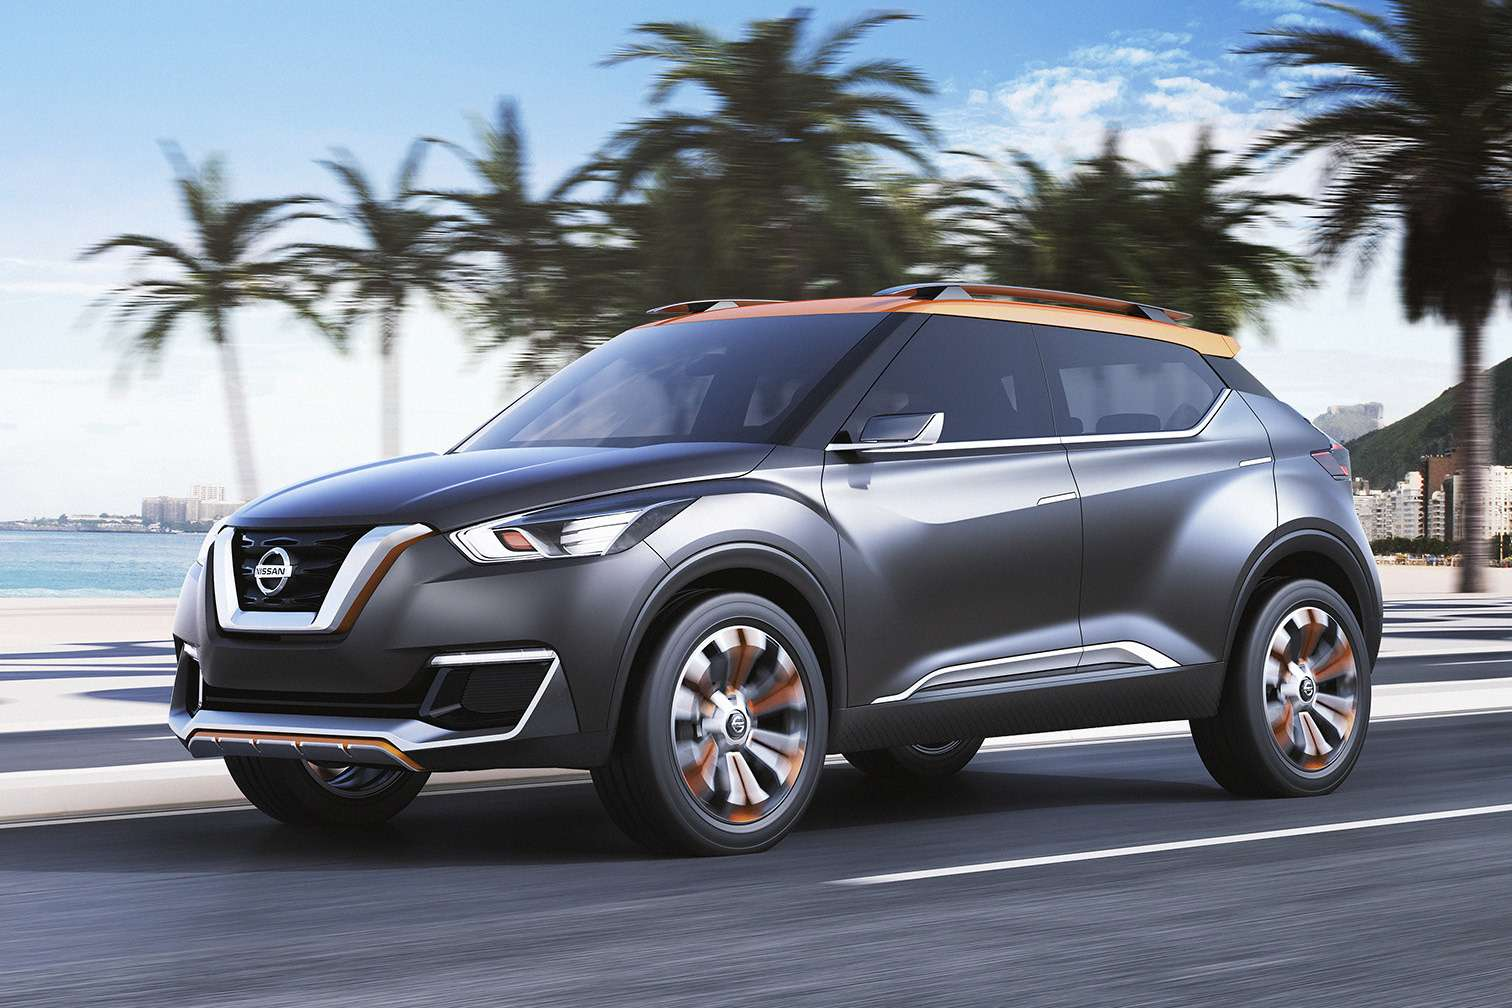 nissan-kicks-suv-to-debut-in-2016-as-the-official-car-of-the-olympics-in-rio-de-janeiro_1